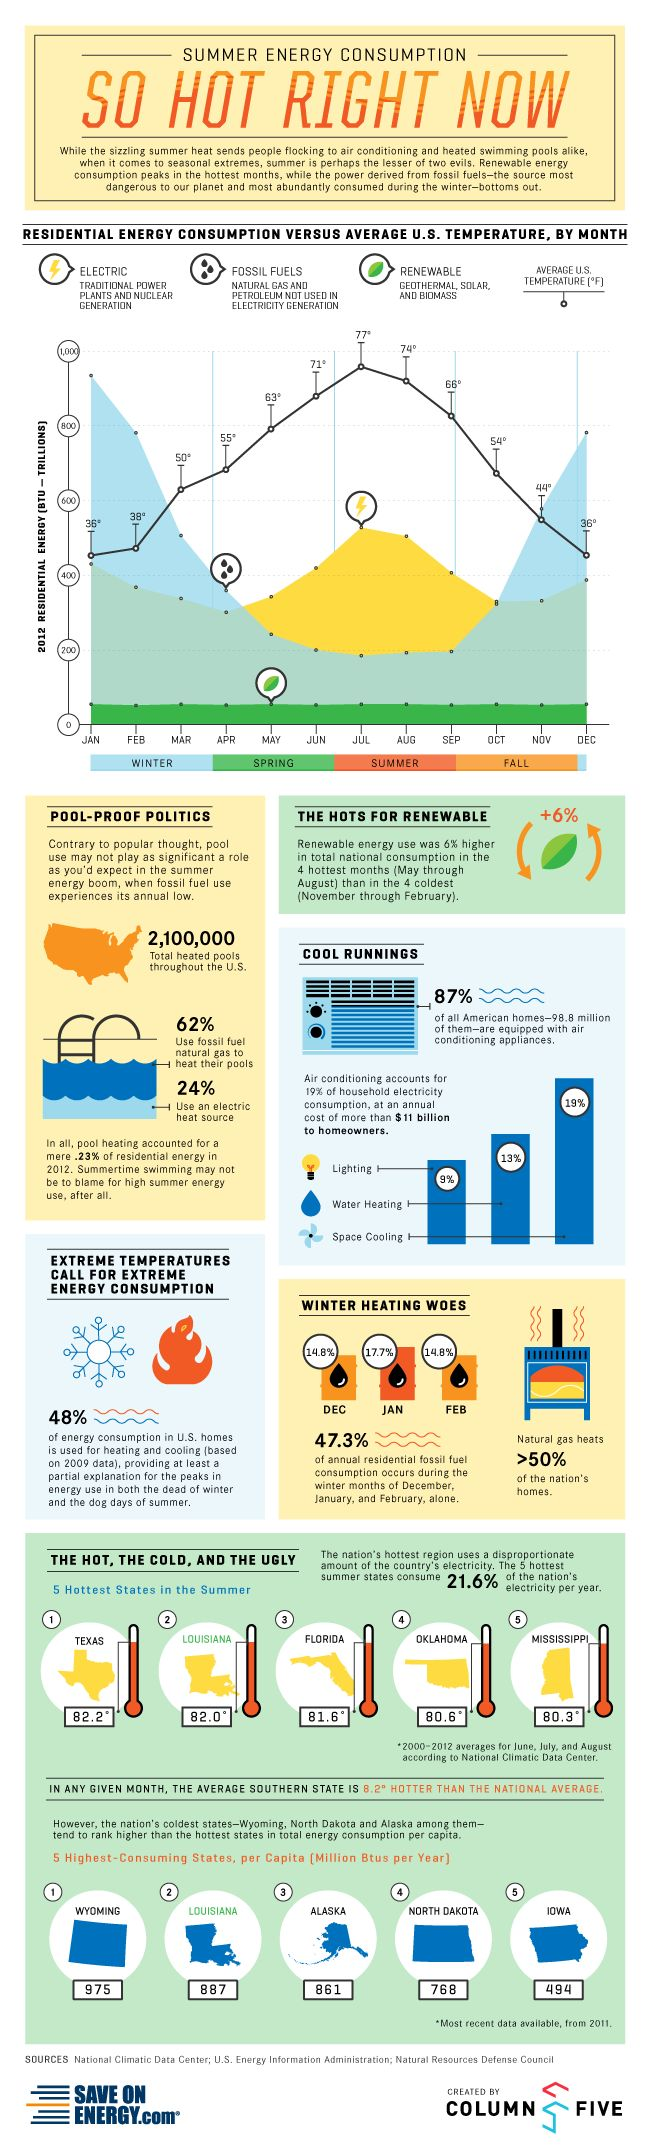 291 best Energy Charts and Graphics. images on Pinterest